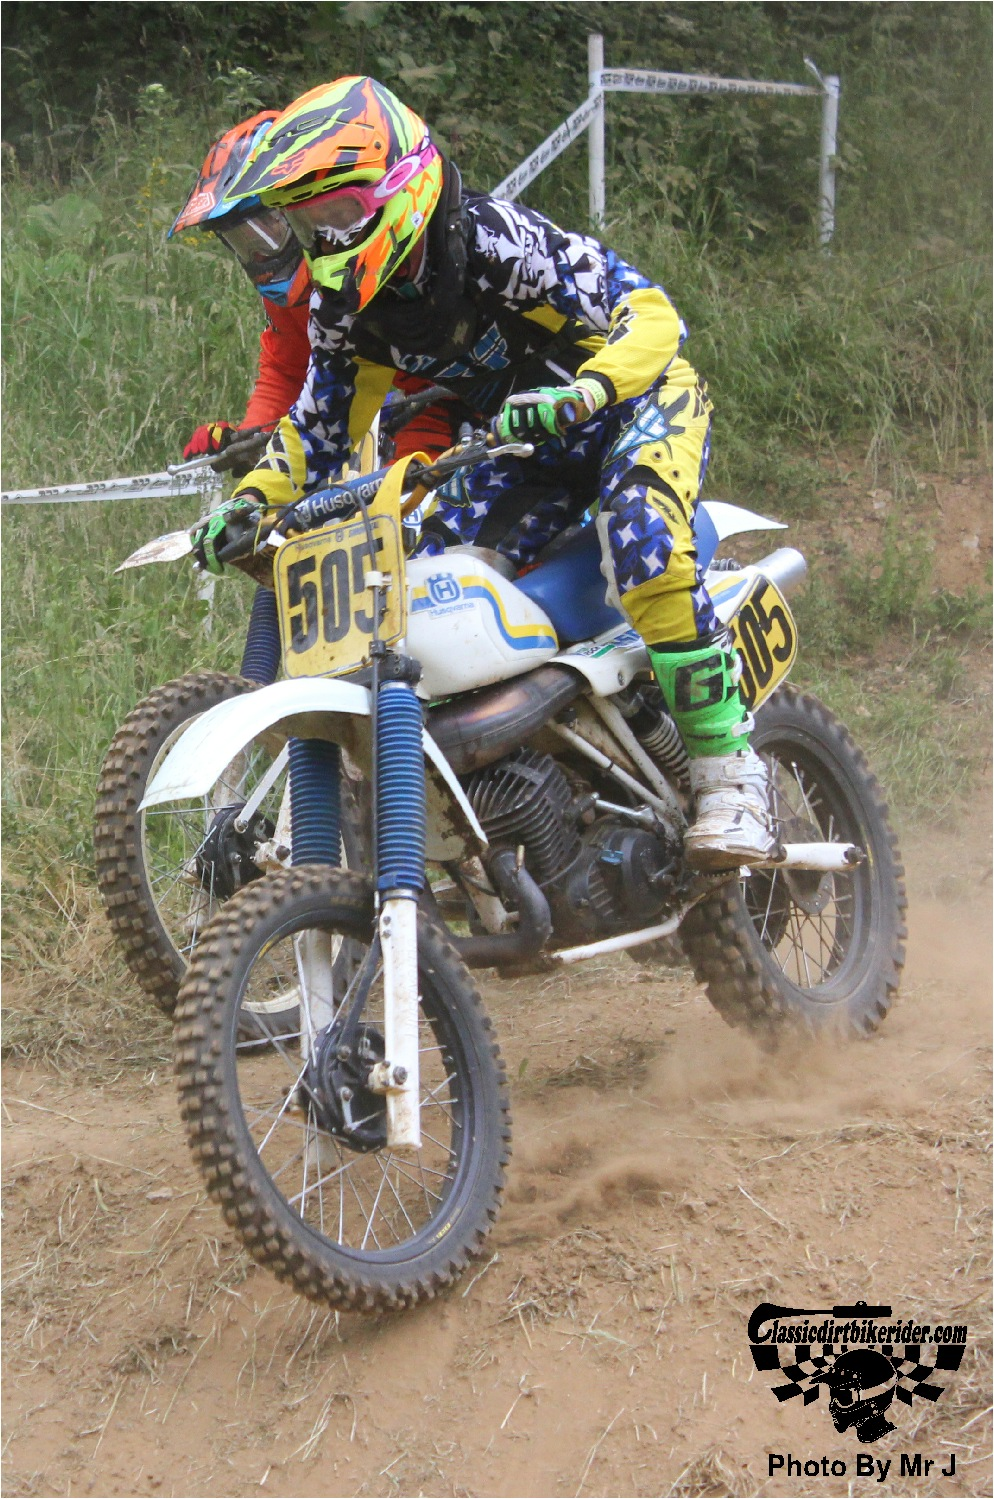 king of the castle 2015 photos Farleigh Castle twinshock motocross classicdirtbikerider.com 60